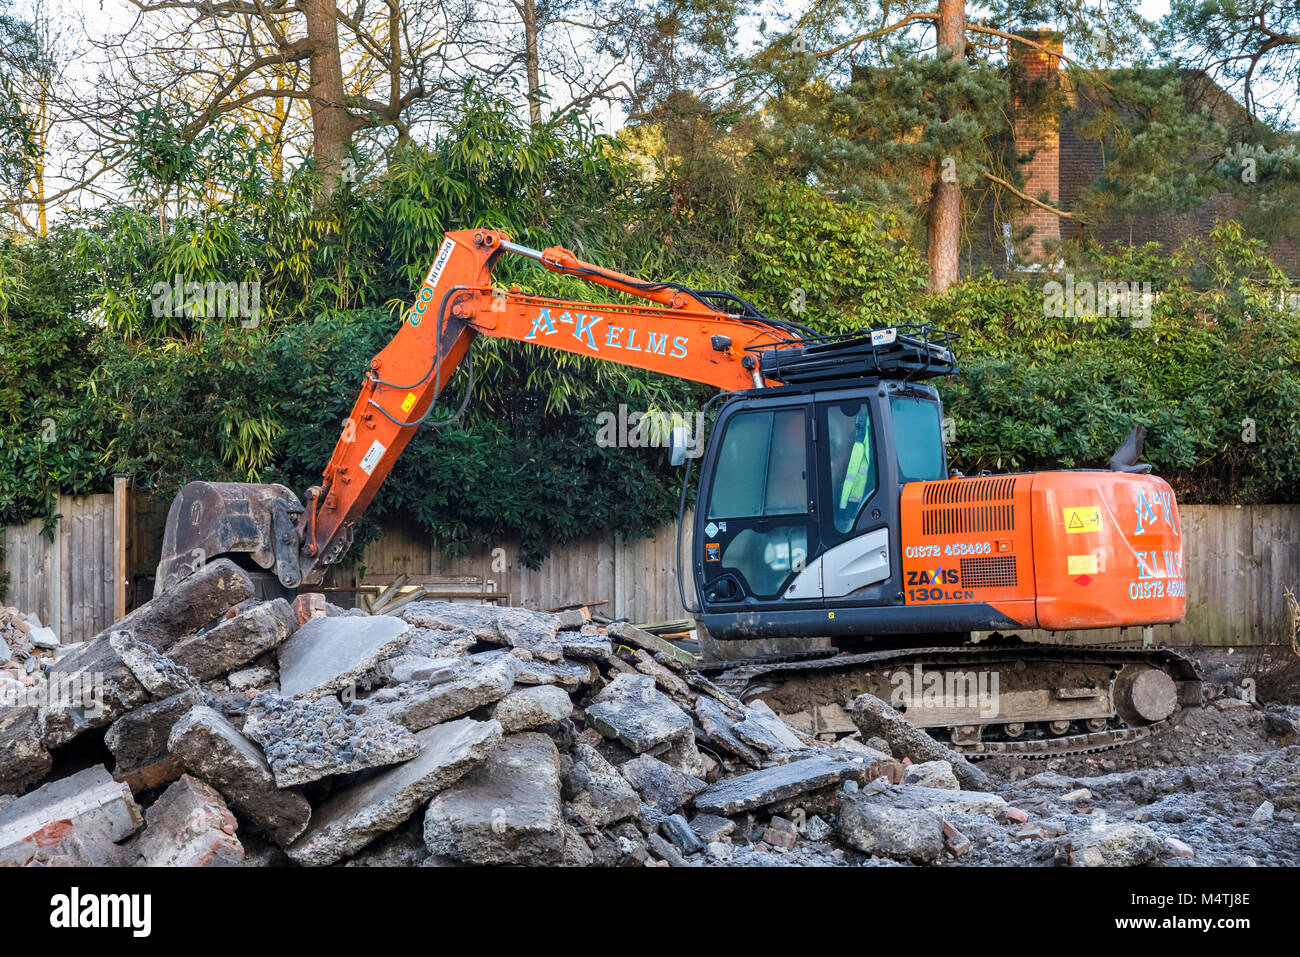 Construction site with orange heavy plant tracked mechanical excavator: remains of the demolition of a residential - Stock Image